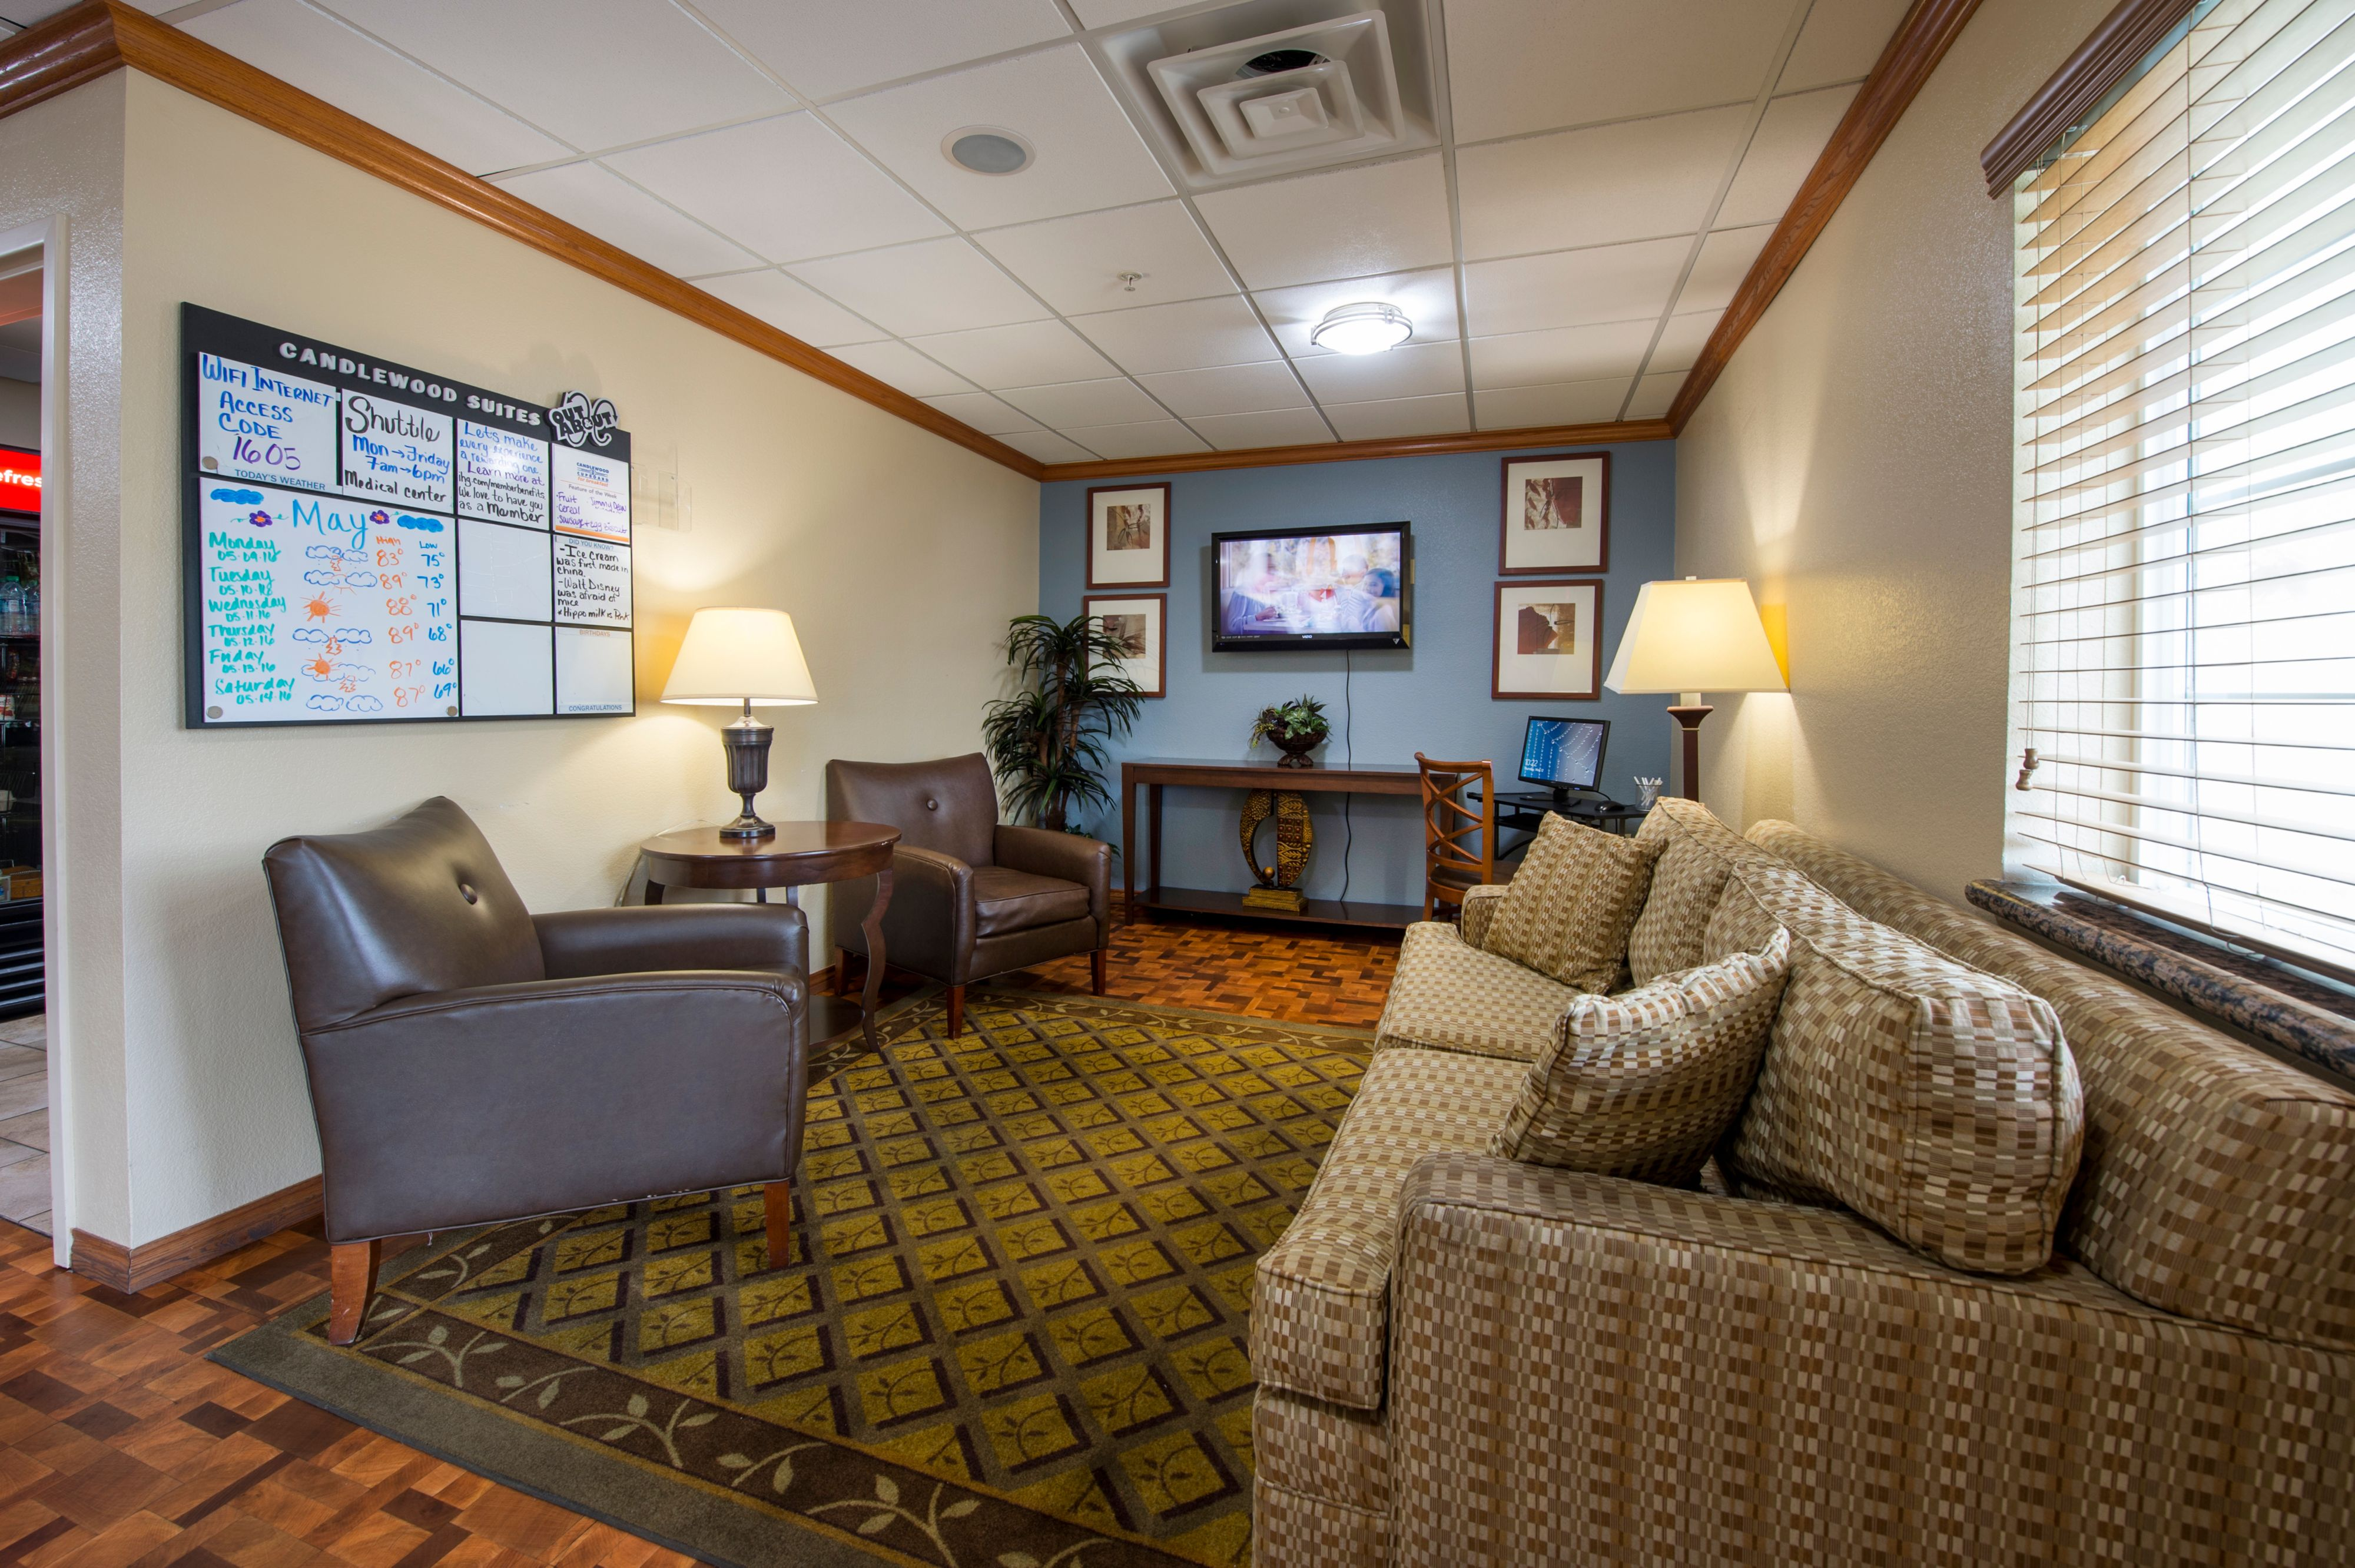 Candlewood Suites Houston Medical Center image 6